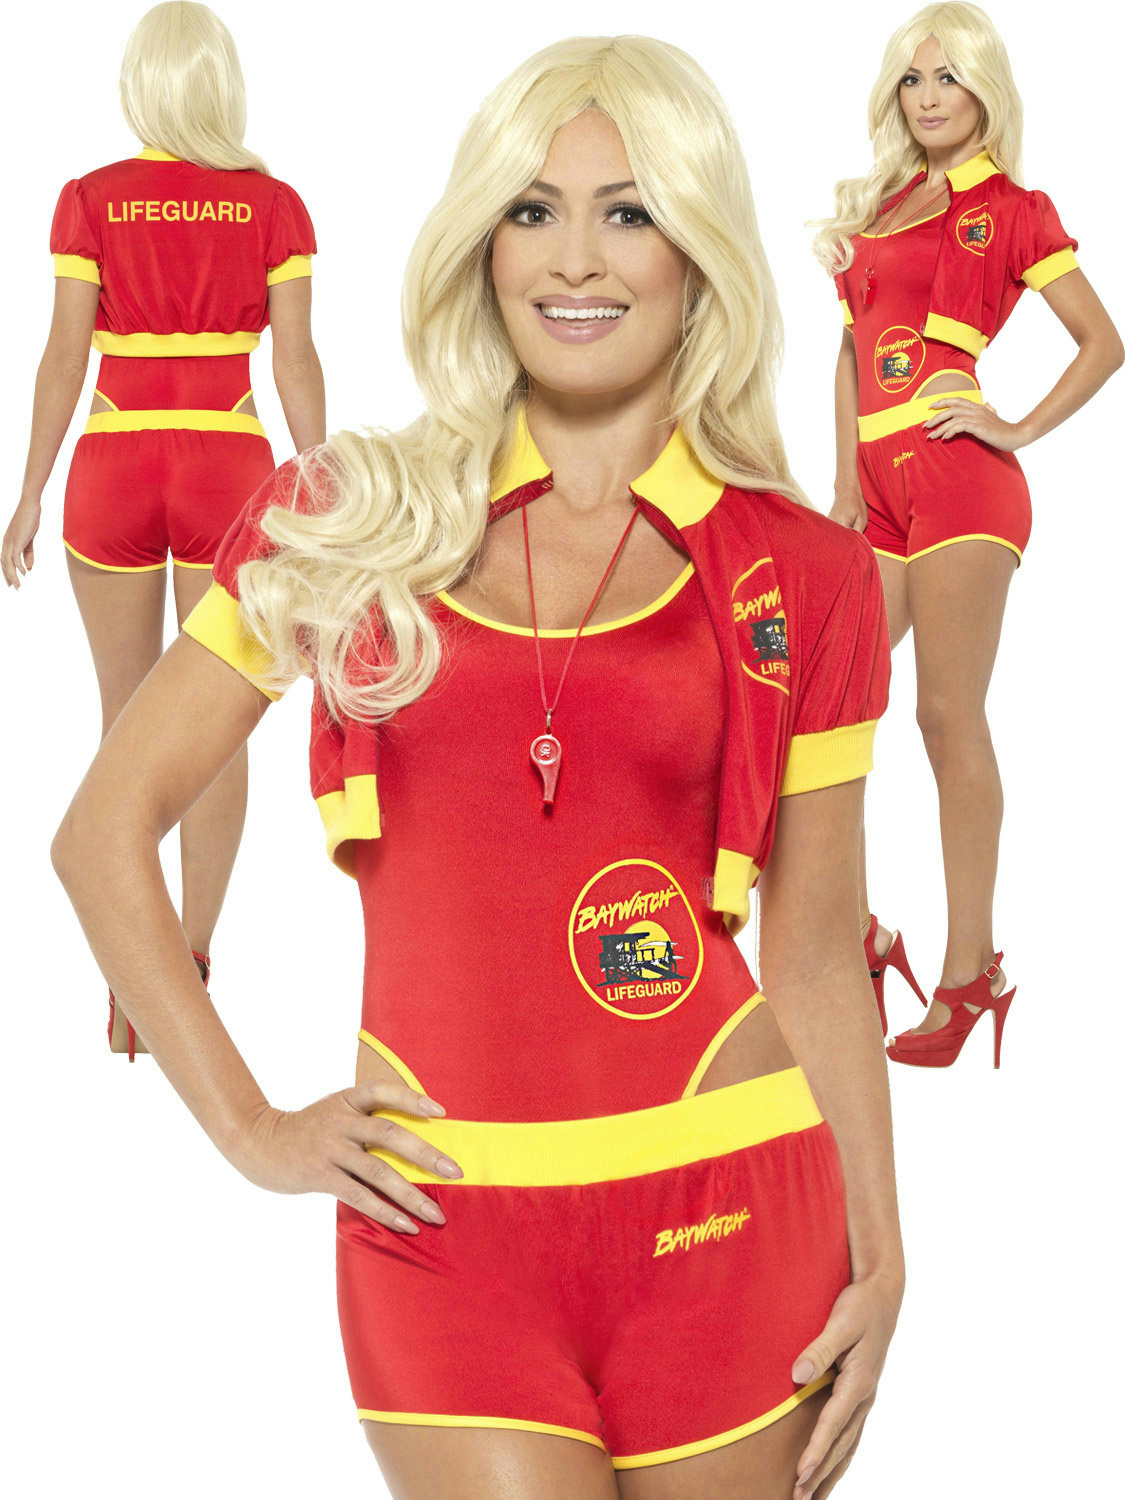 5a5a3e142973 Details about Smiffys Women s Baywatch Lifeguard Sexy Adult 90s tv Costume  Size XS 2-4